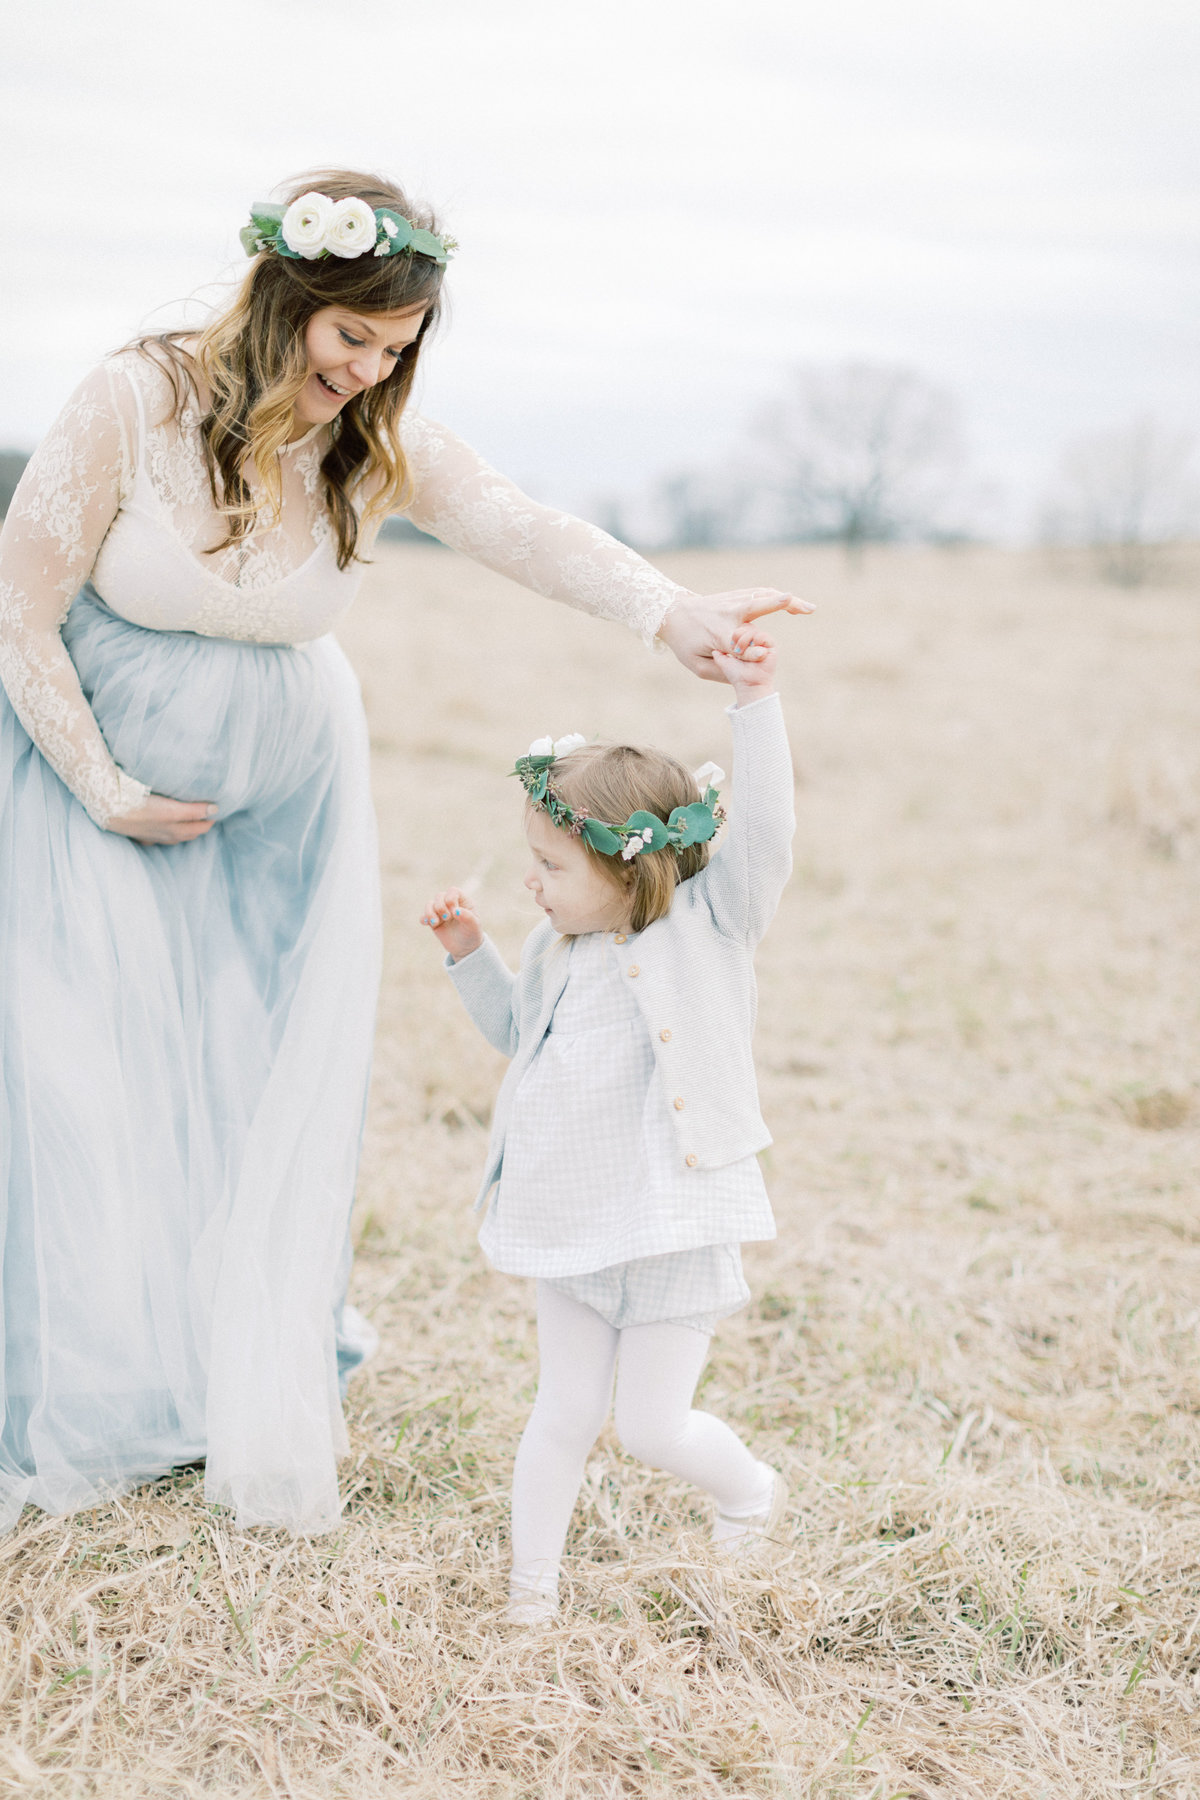 Southeast WI maternity photographer